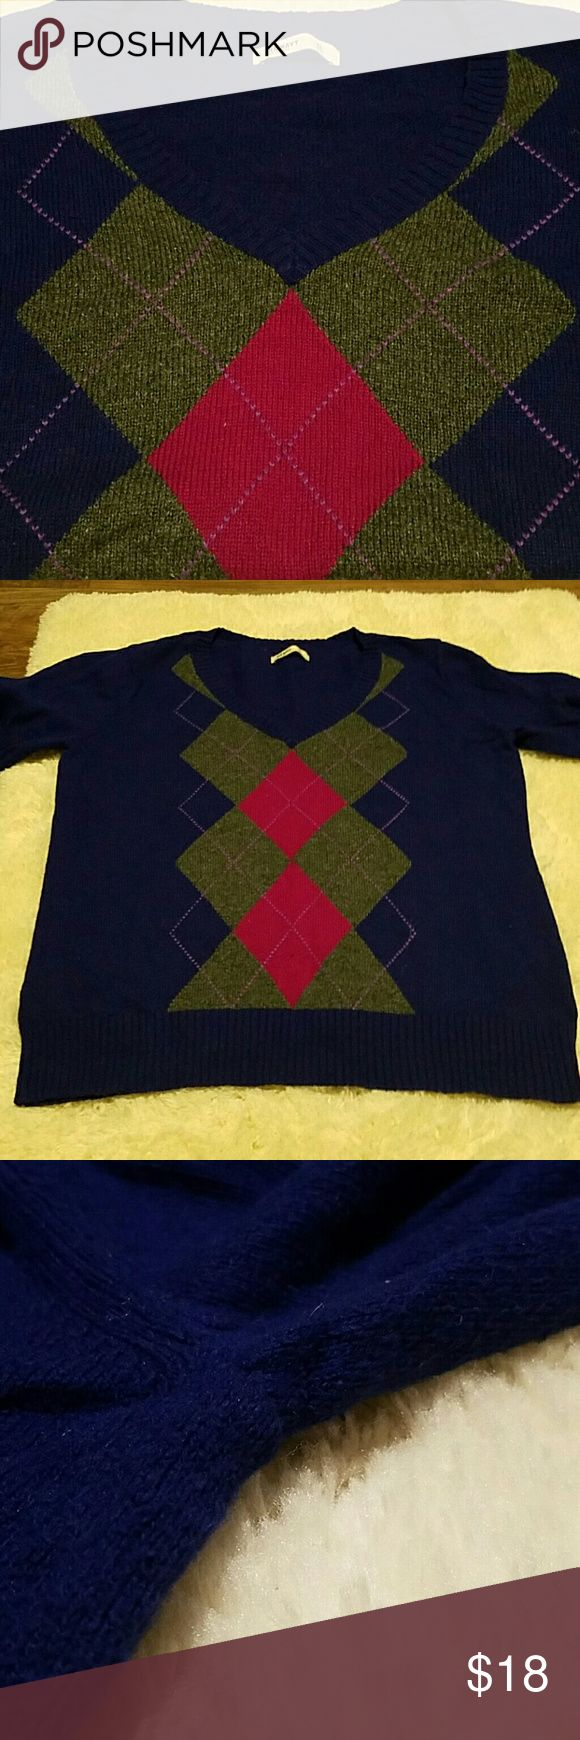 Argyle sweater by Old Navy Slightly used Argyle sweater. Comfortable and clean. No marks, pilling, or holes. Dark purple with grey and deep pink Argyle pattern. Old Navy Sweaters V-Necks